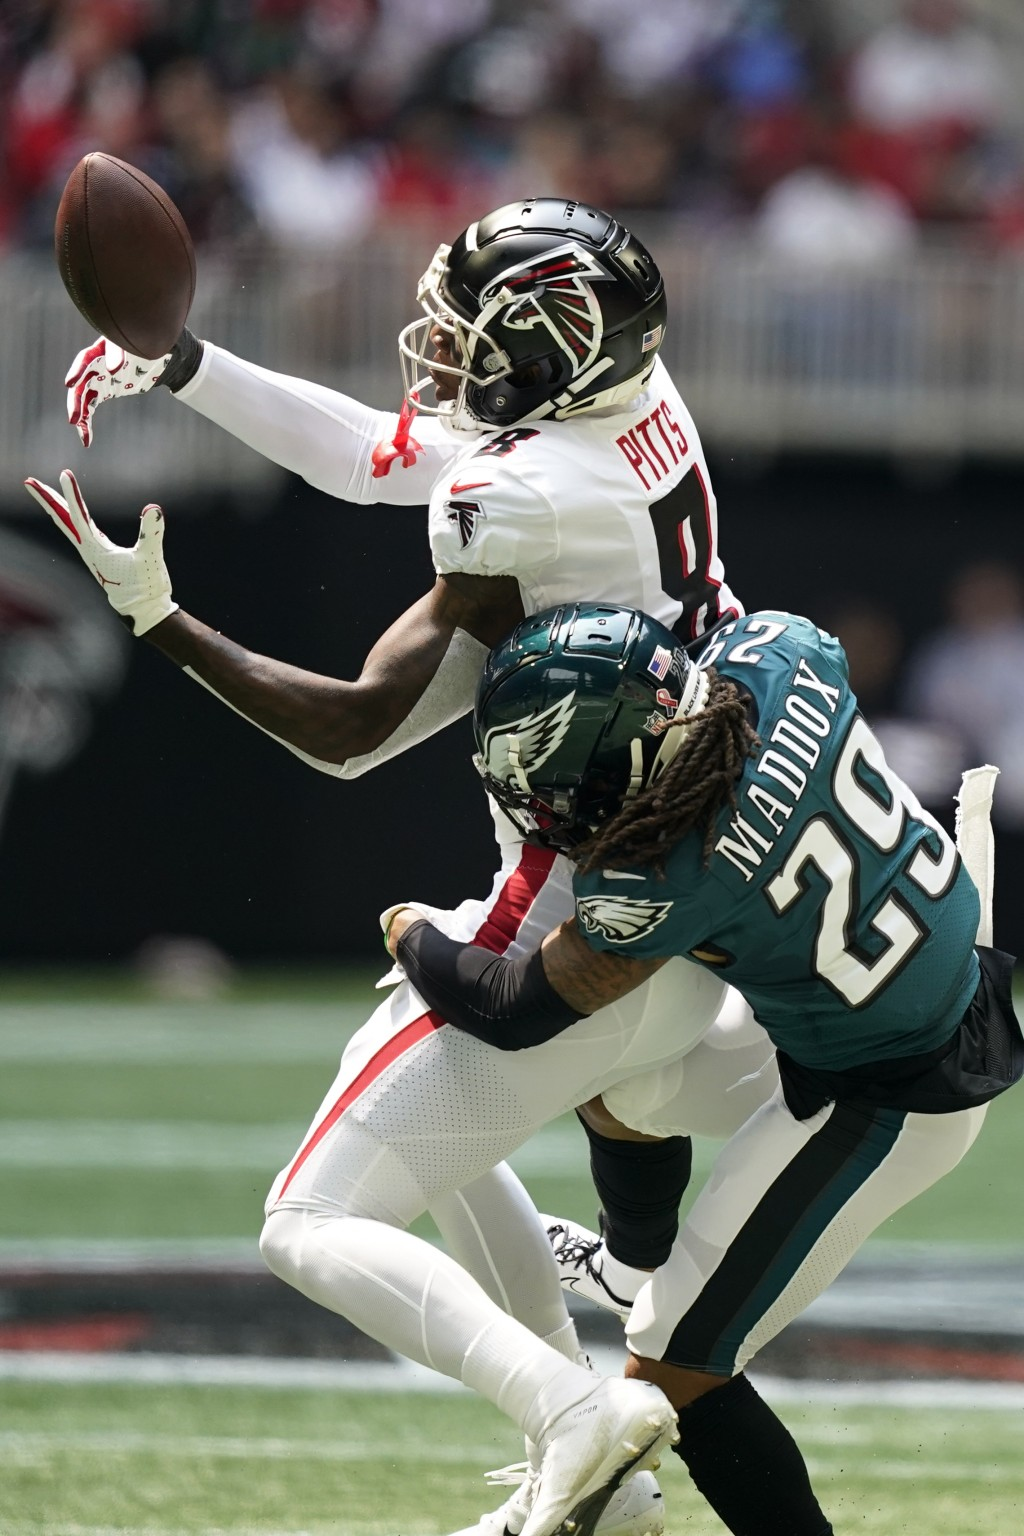 Atlanta Falcons tight end Kyle Pitts (8) misses the catch against Philadelphia Eagles free safety Avonte Maddox (29) during the first half of an NFL f...